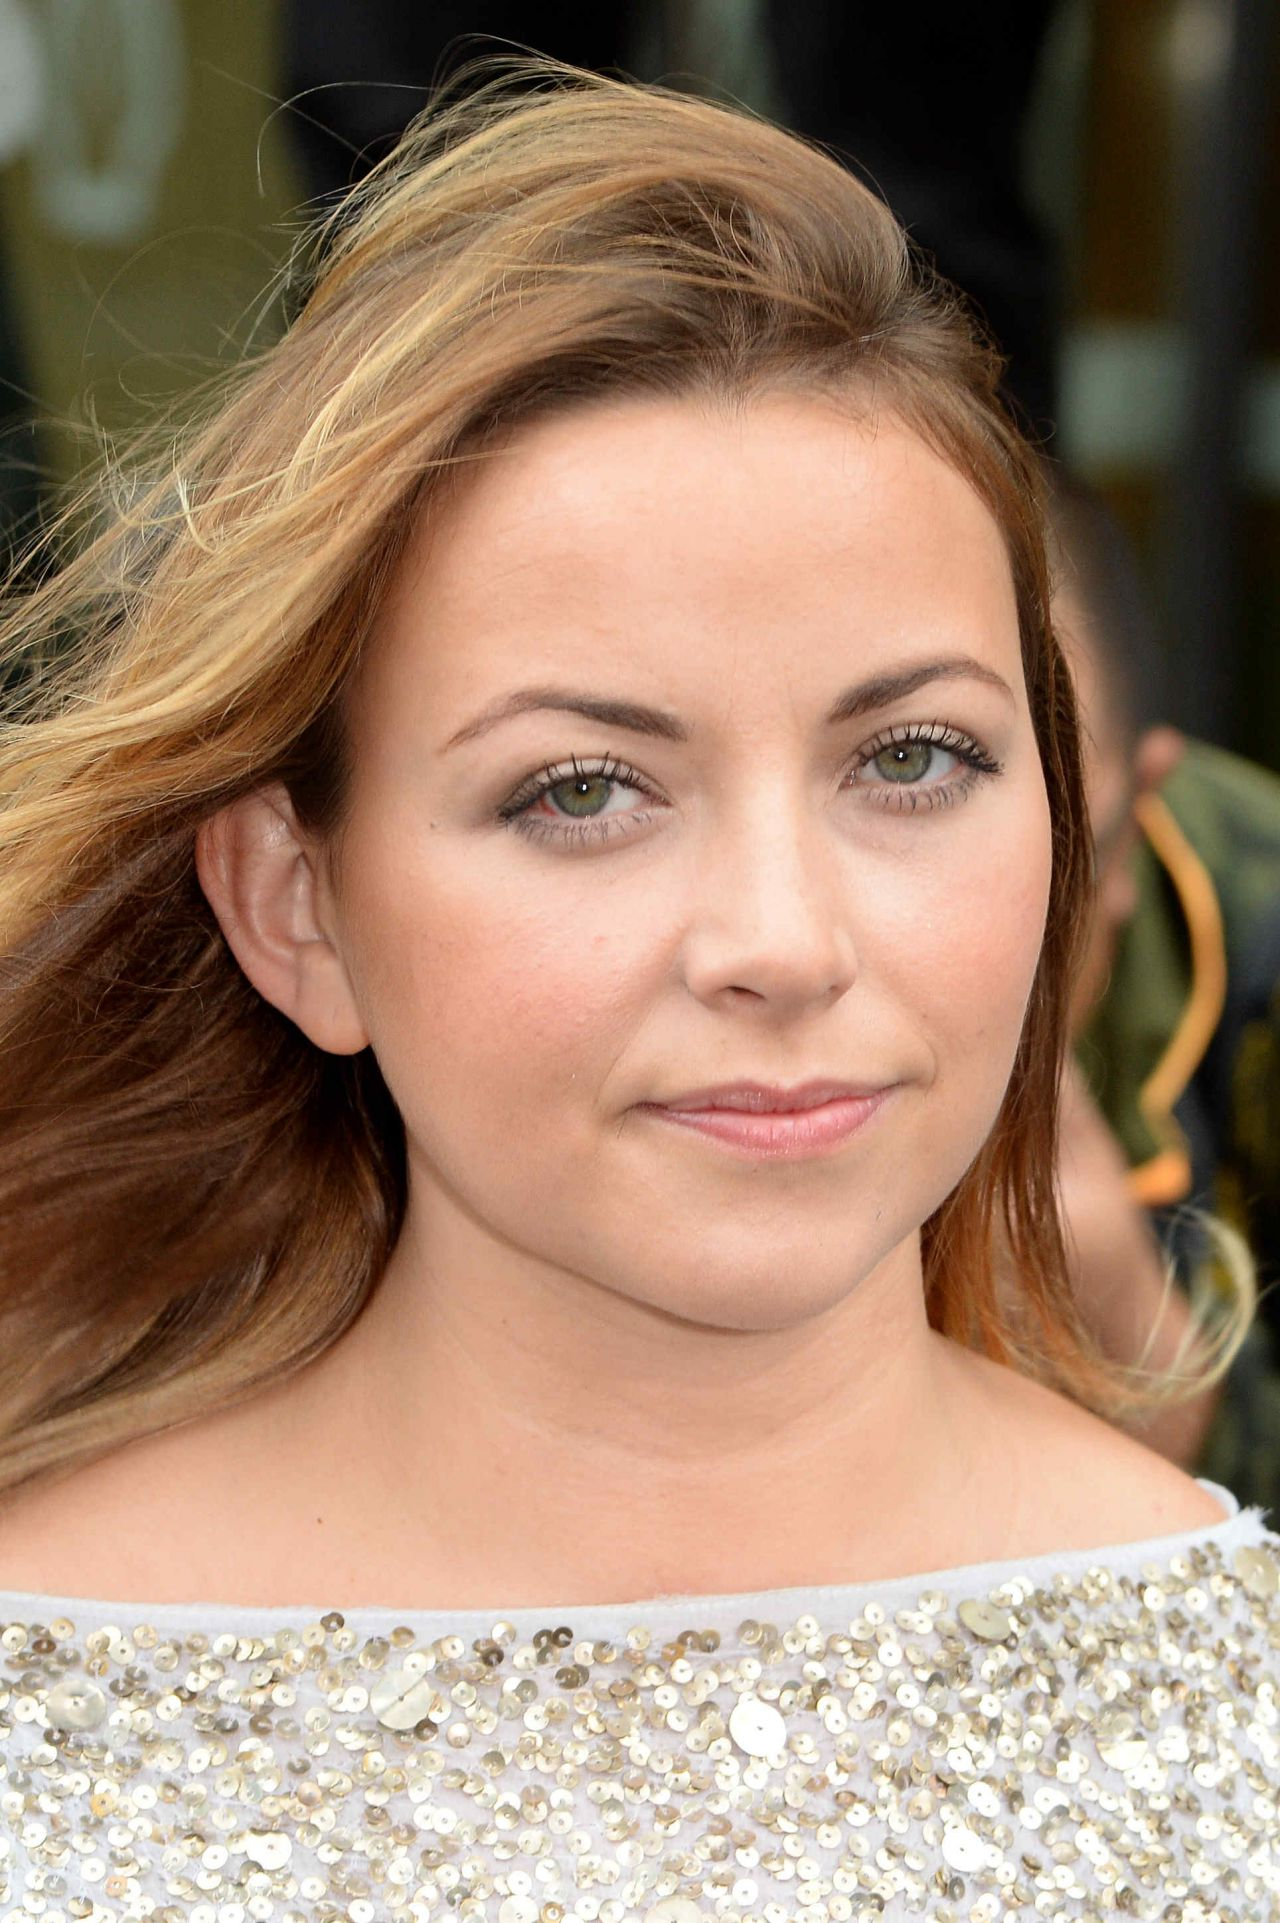 charlotte church - photo #4